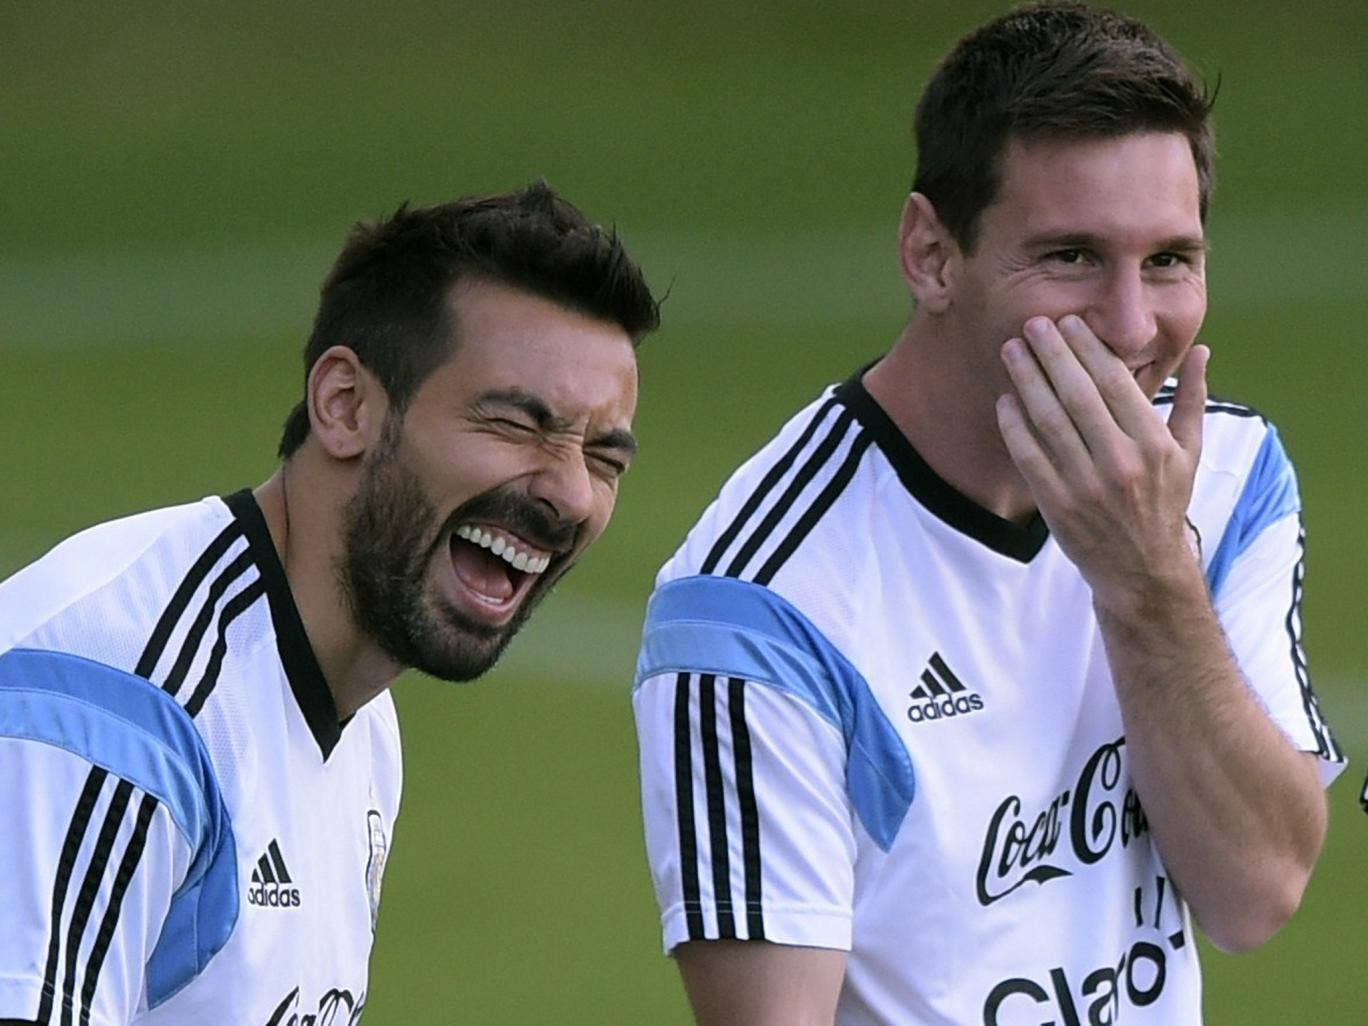 Ezequiel Lavezzi and Lionel Messi share a joke during training